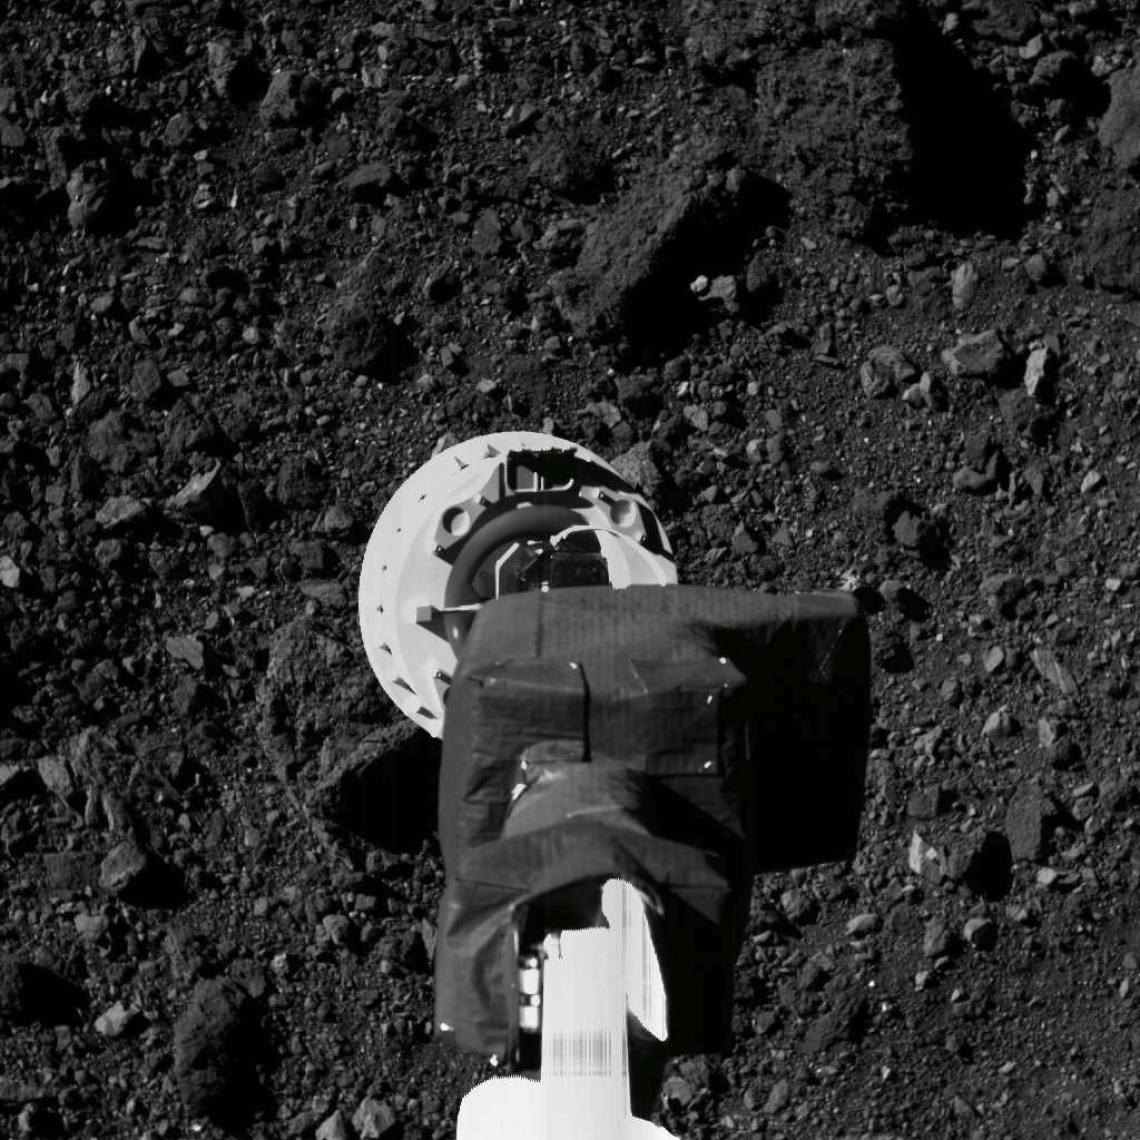 OSIRIS-REx sample arm and Bennu surface